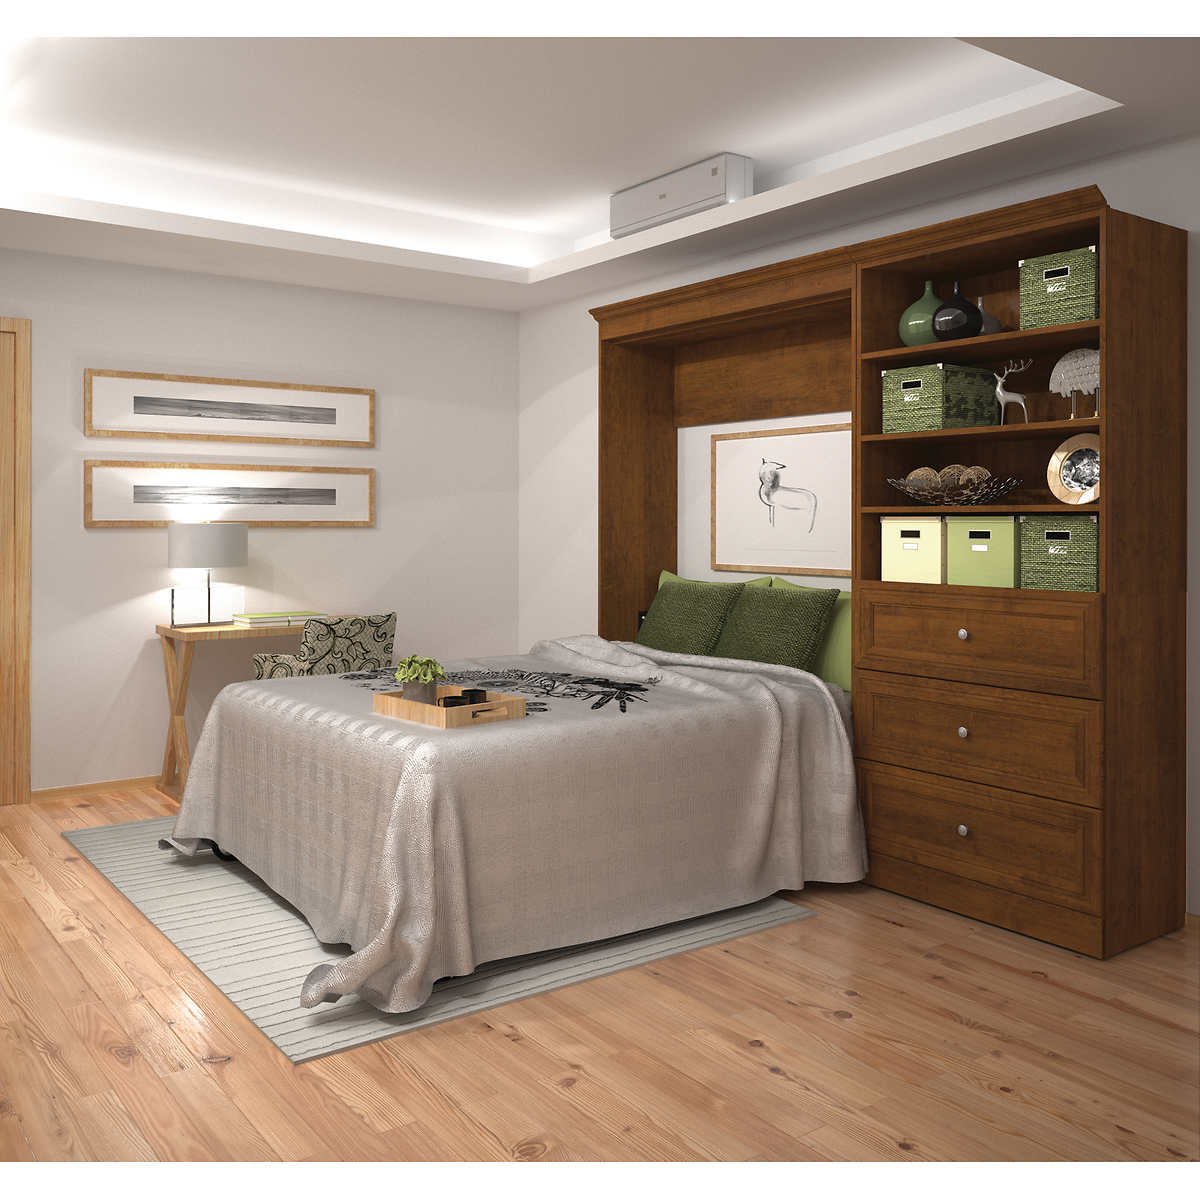 Bestar audrea full wall bed with 36 storage unit with drawers in bestar audrea full wall bed with 36 storage unit with drawers in tuscany amipublicfo Image collections